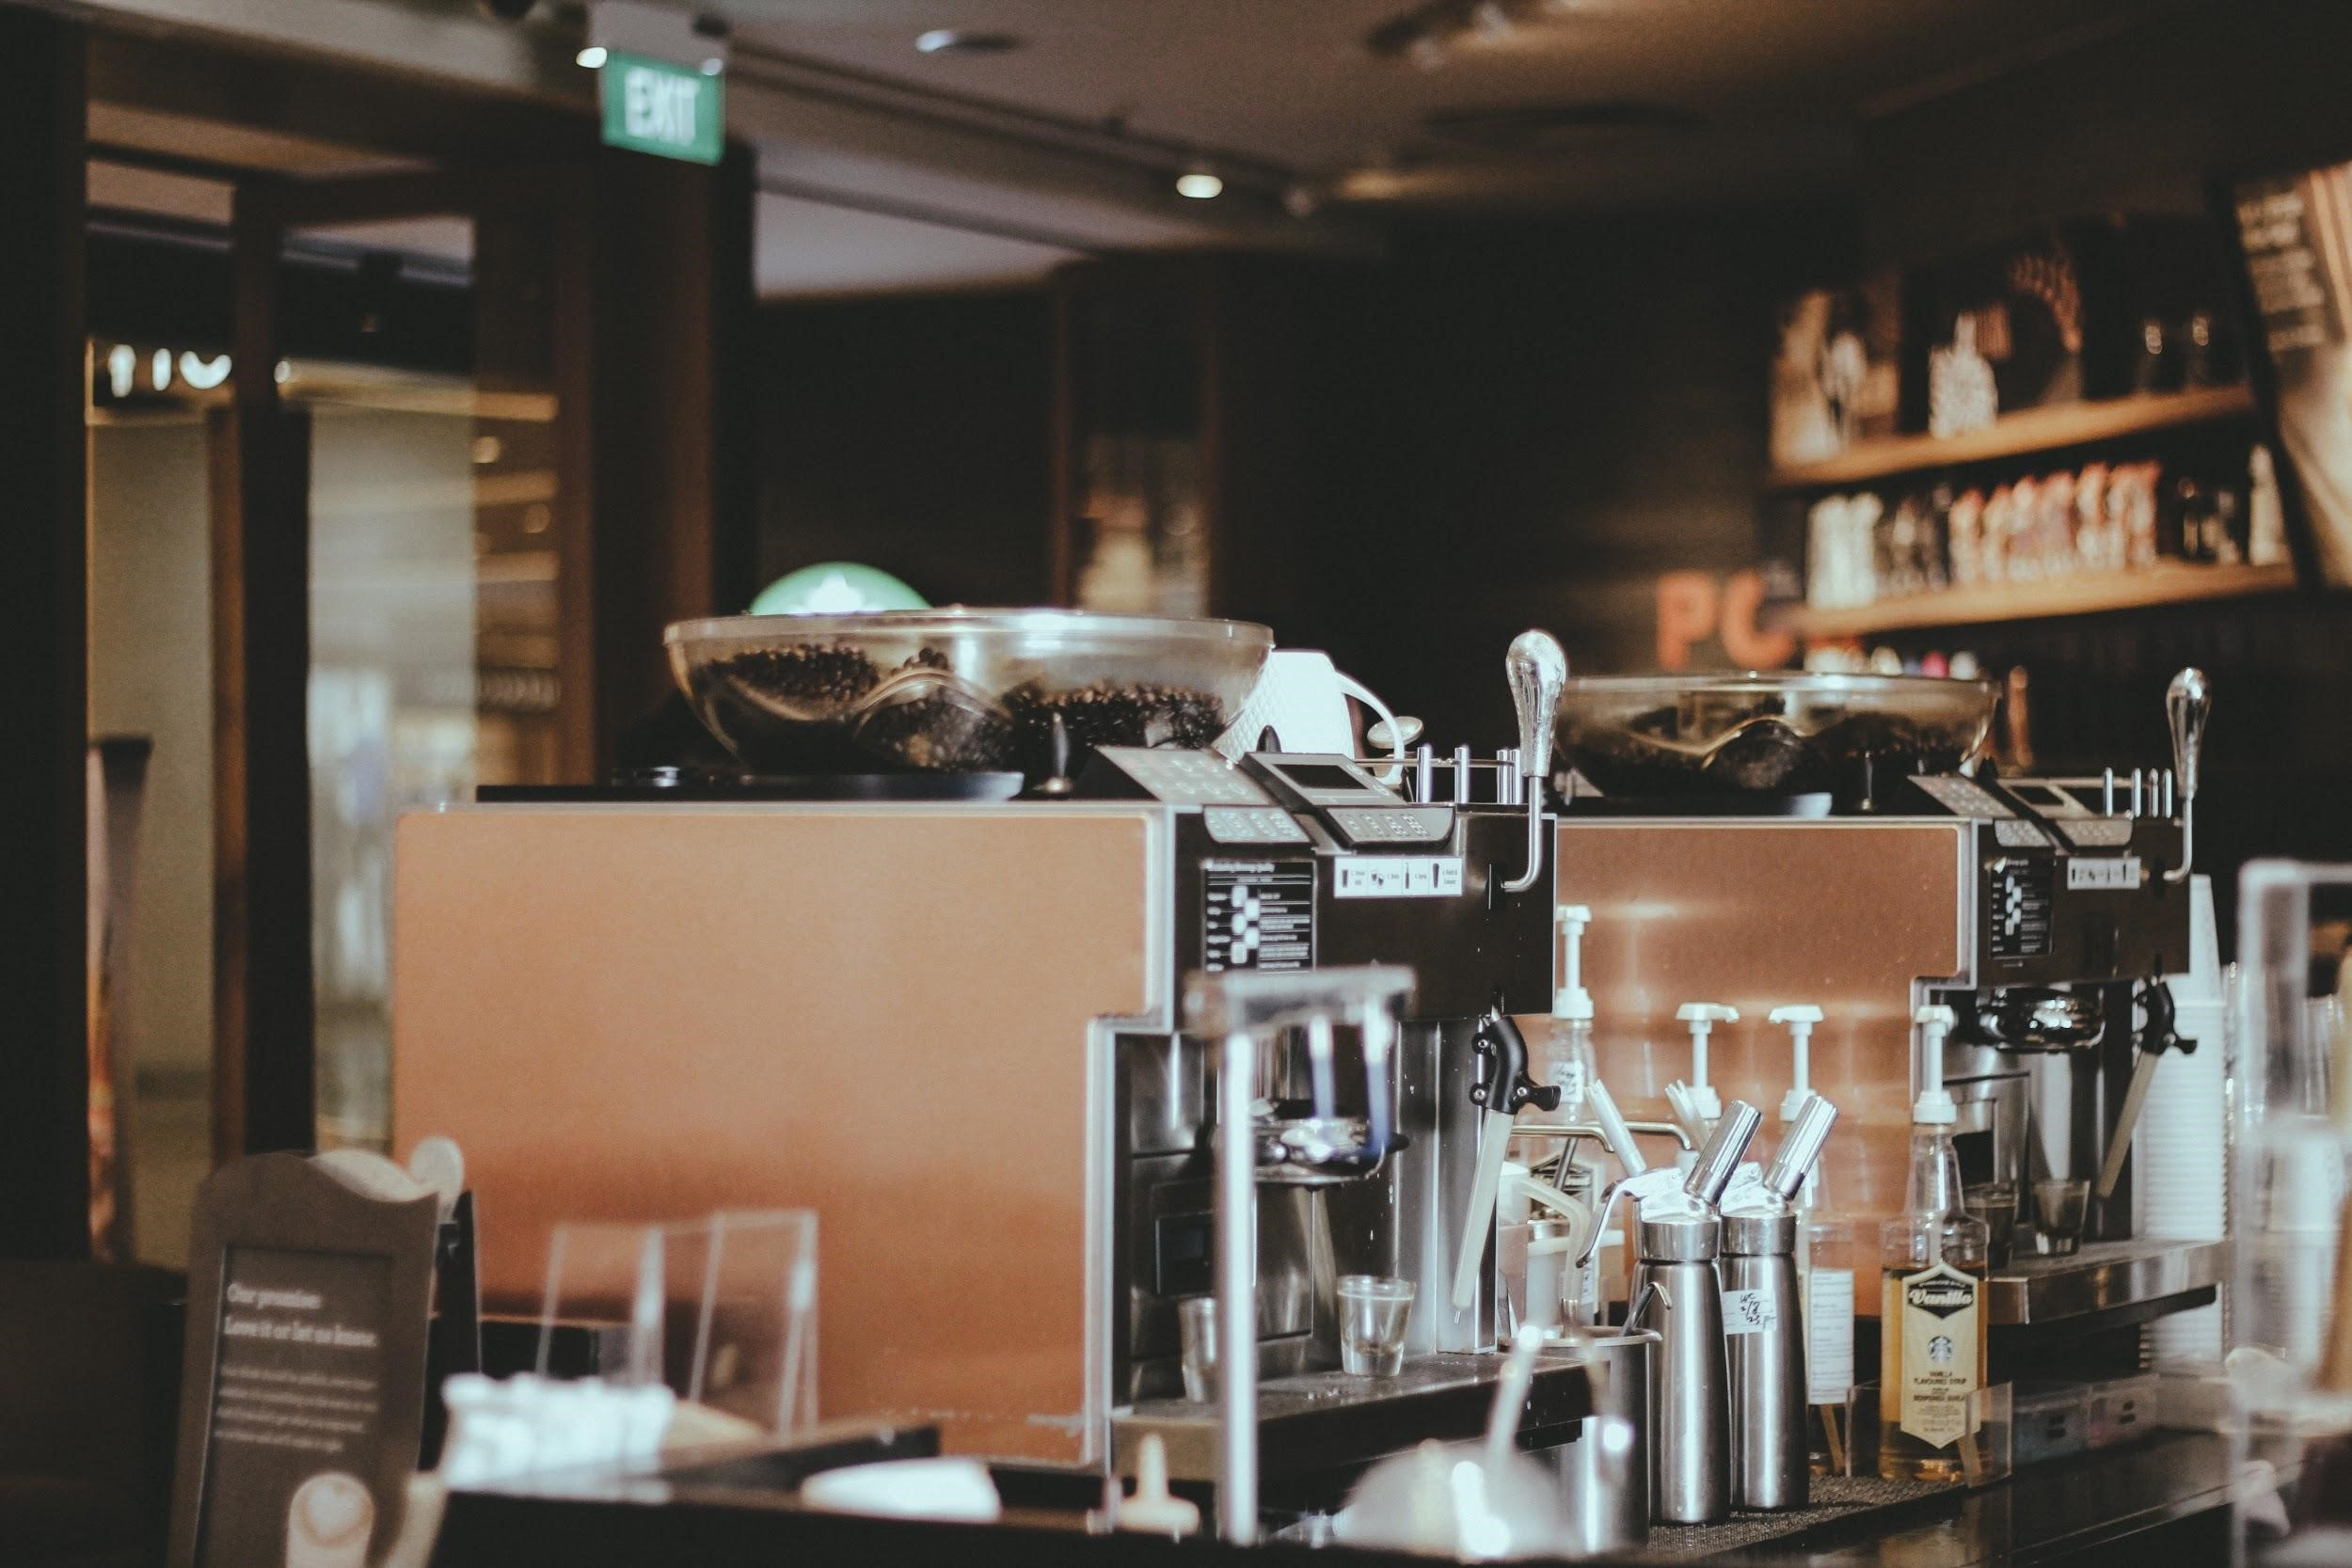 Travel for Coffee to an espresso bar in Italy